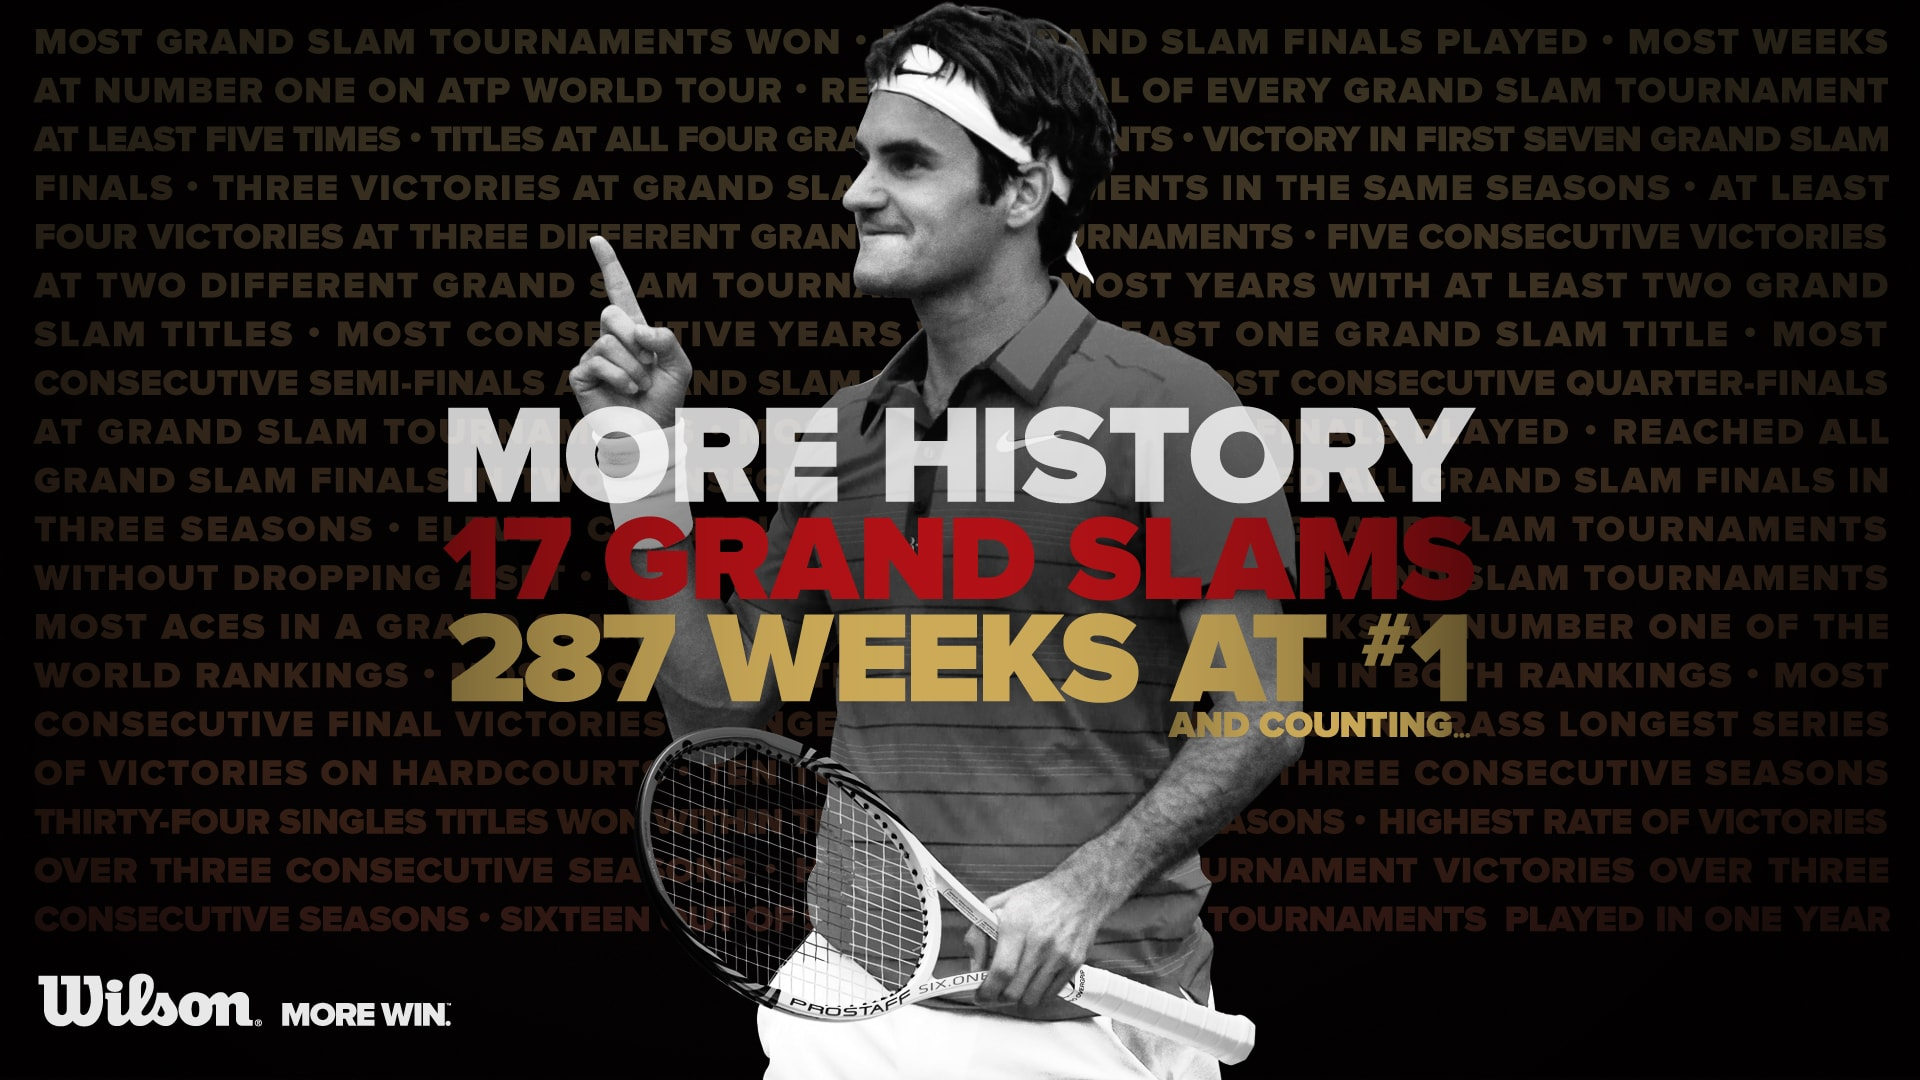 Roger Federer widescreen wallpapers